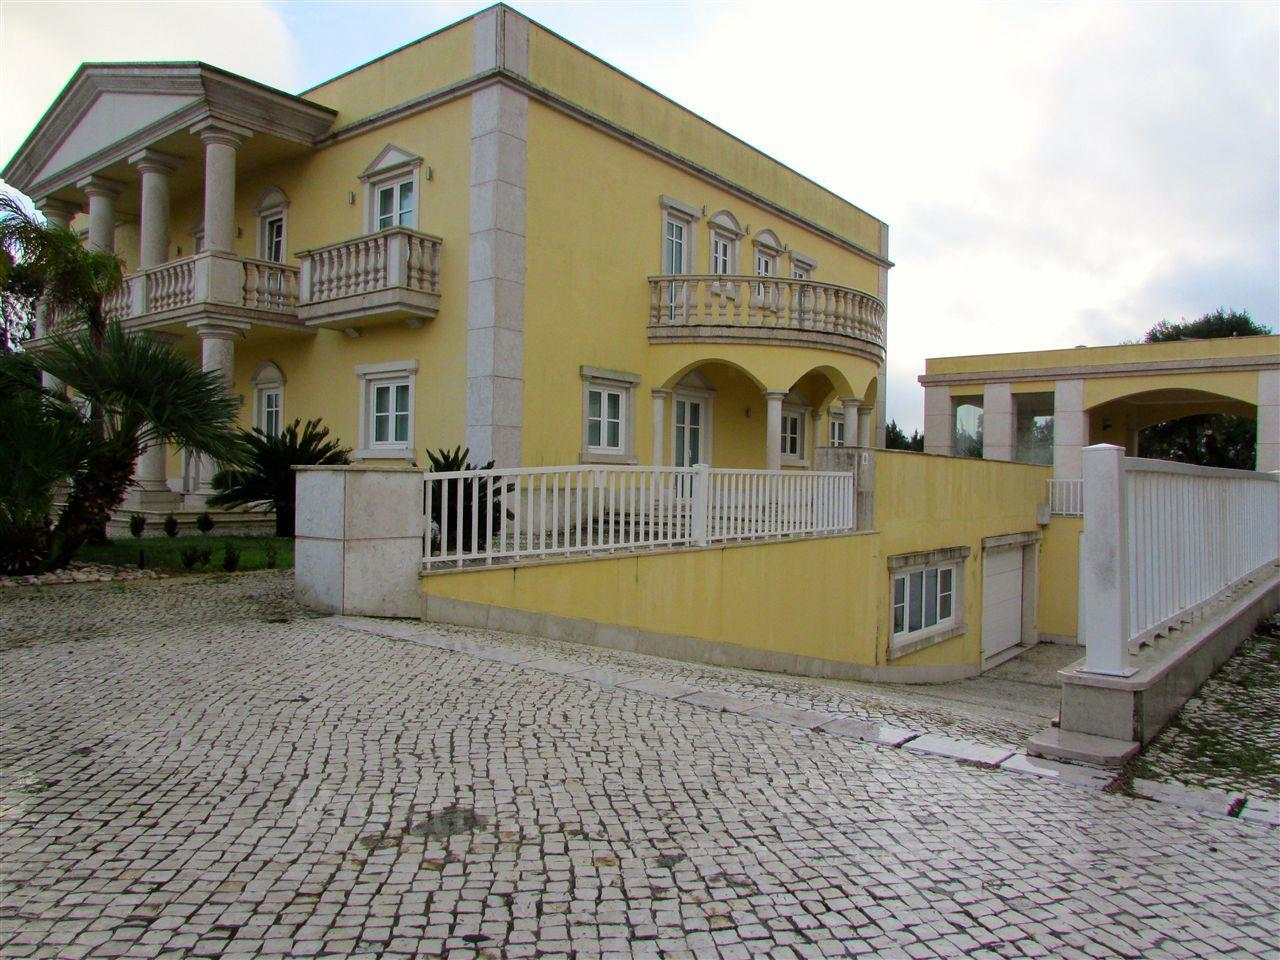 Tek Ailelik Ev için Satış at House, 5 bedrooms, for Sale Beloura, Sintra, Lisboa Portekiz